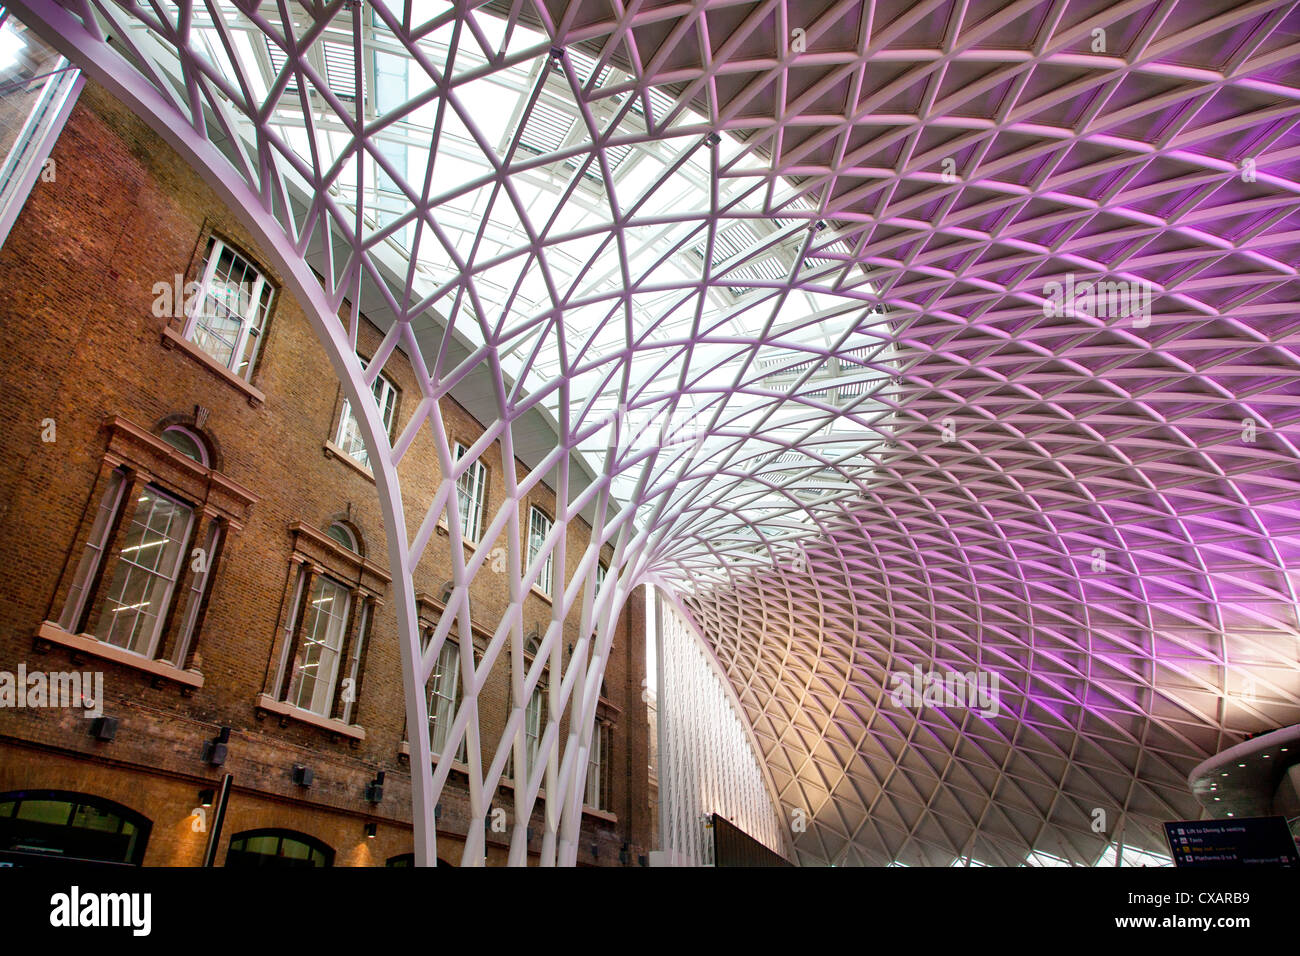 Western concourse of King's Cross Station, London, England, United Kingdom, Europe - Stock Image